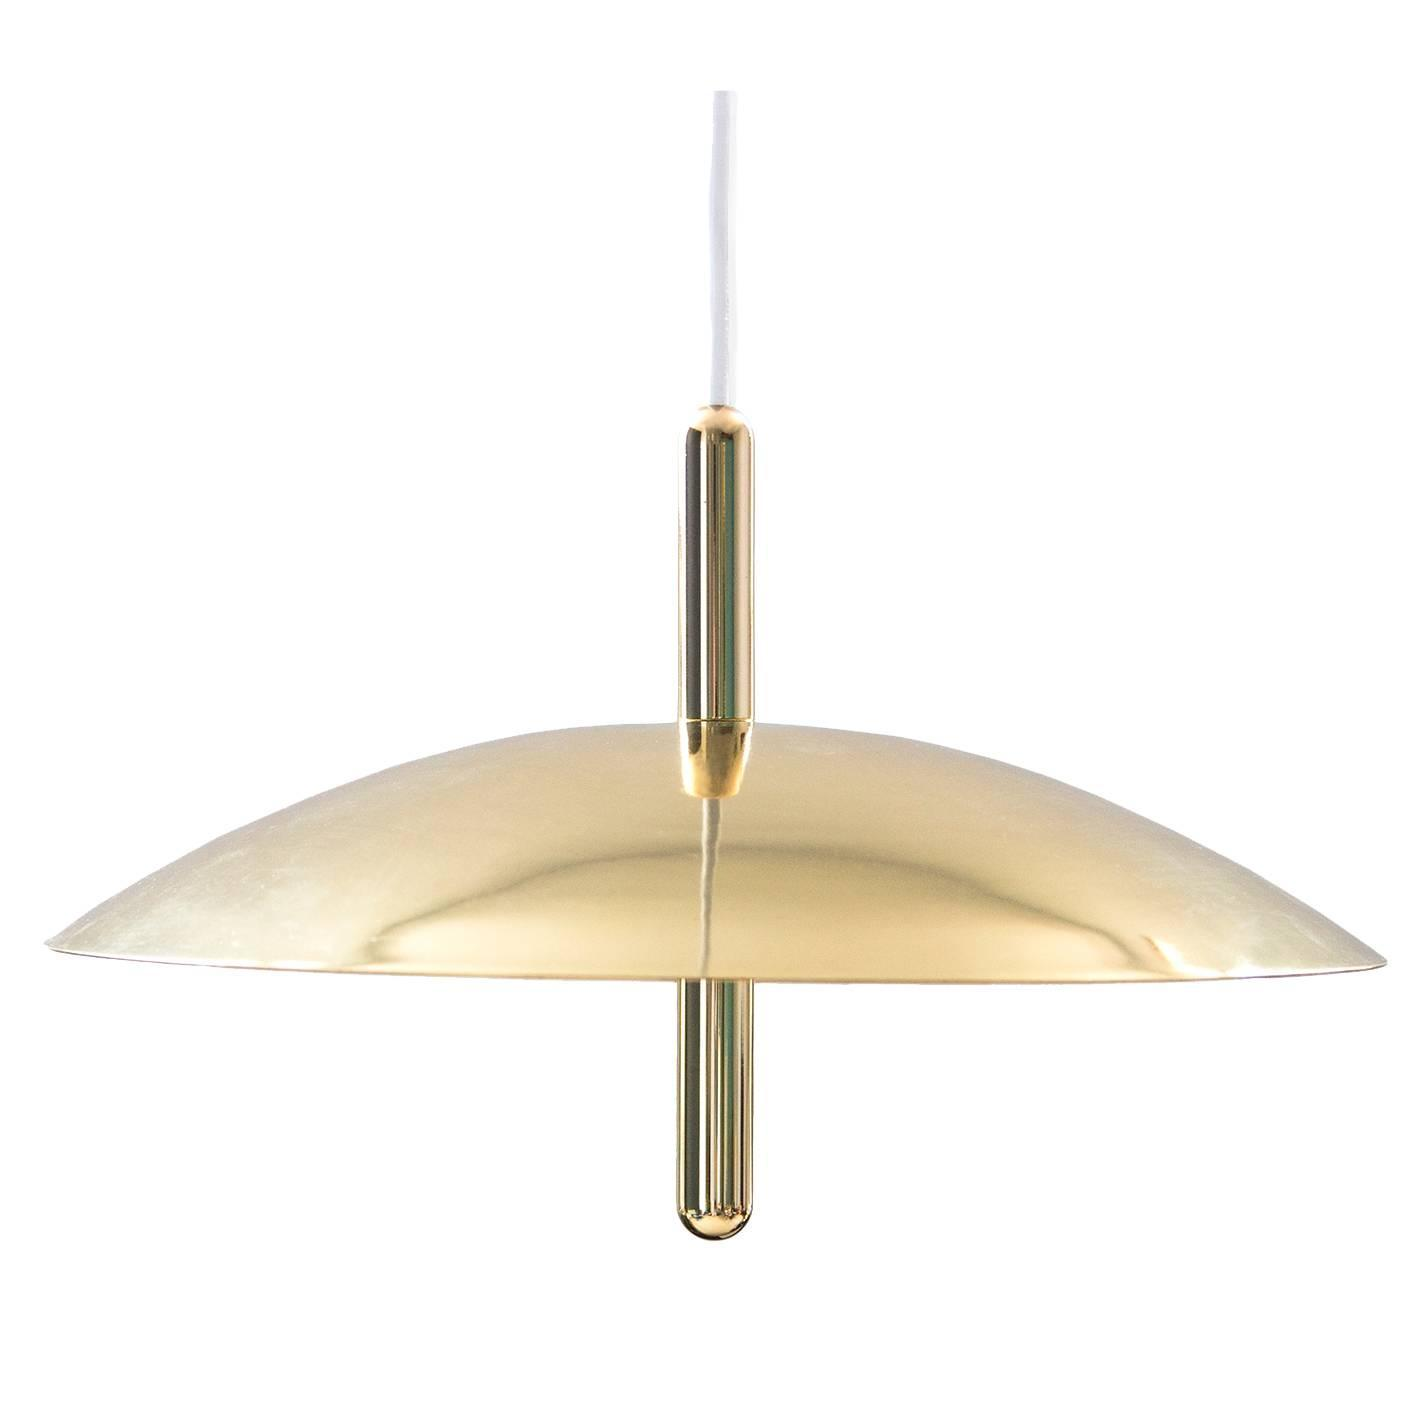 and finland furniture lighting white id plexiglass brass orno yki for nummi lights sale chandeliers at pendant z f